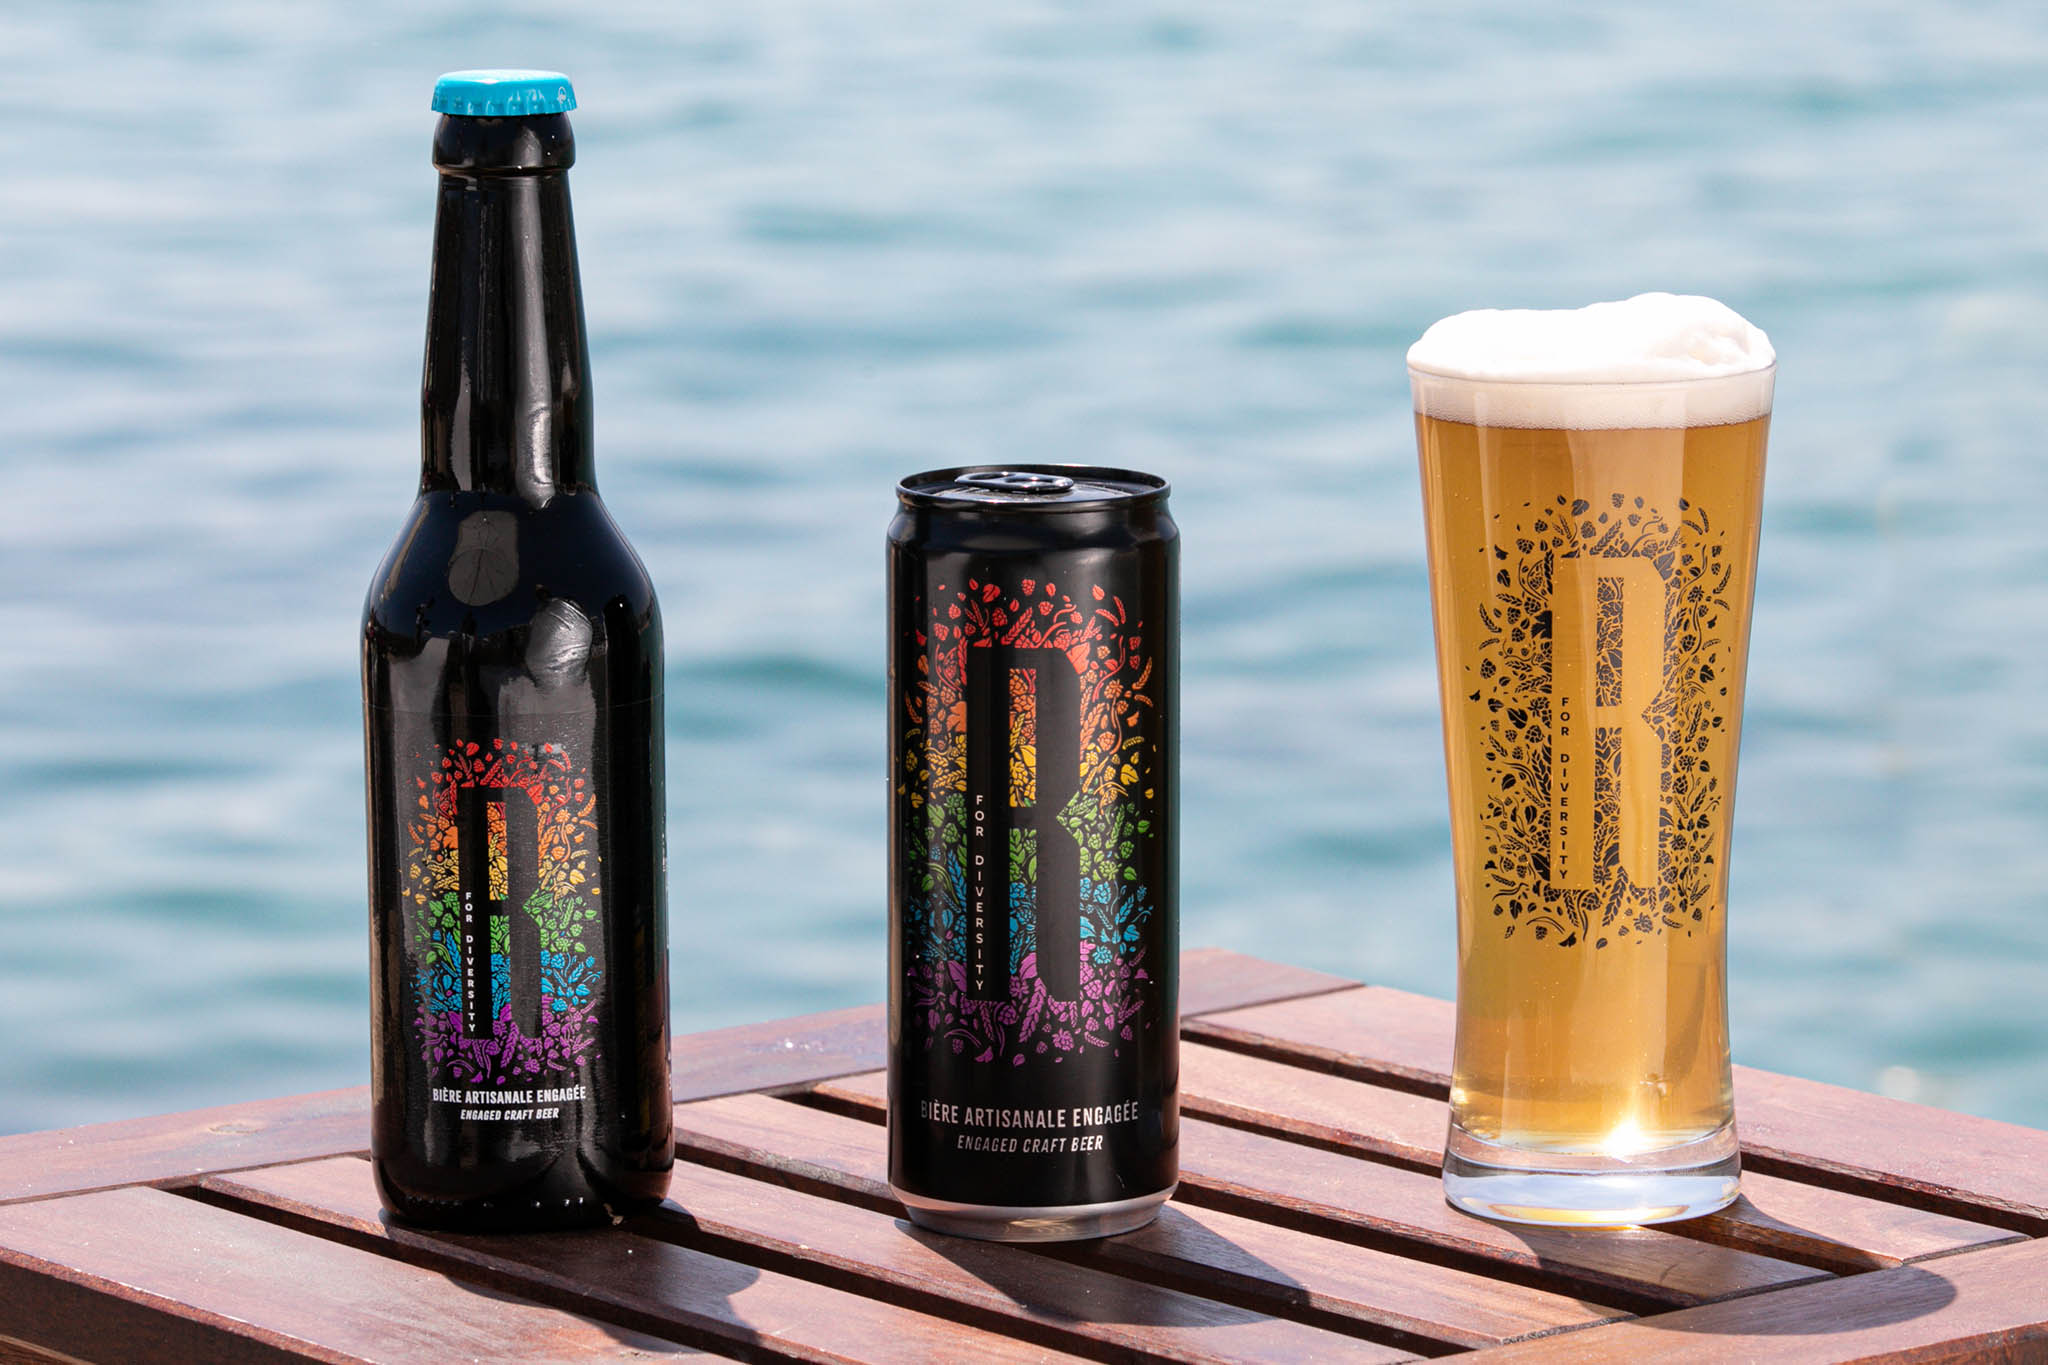 r-for-diveristy-biere-artisanale-engagee-lgbtqi-nos-produits